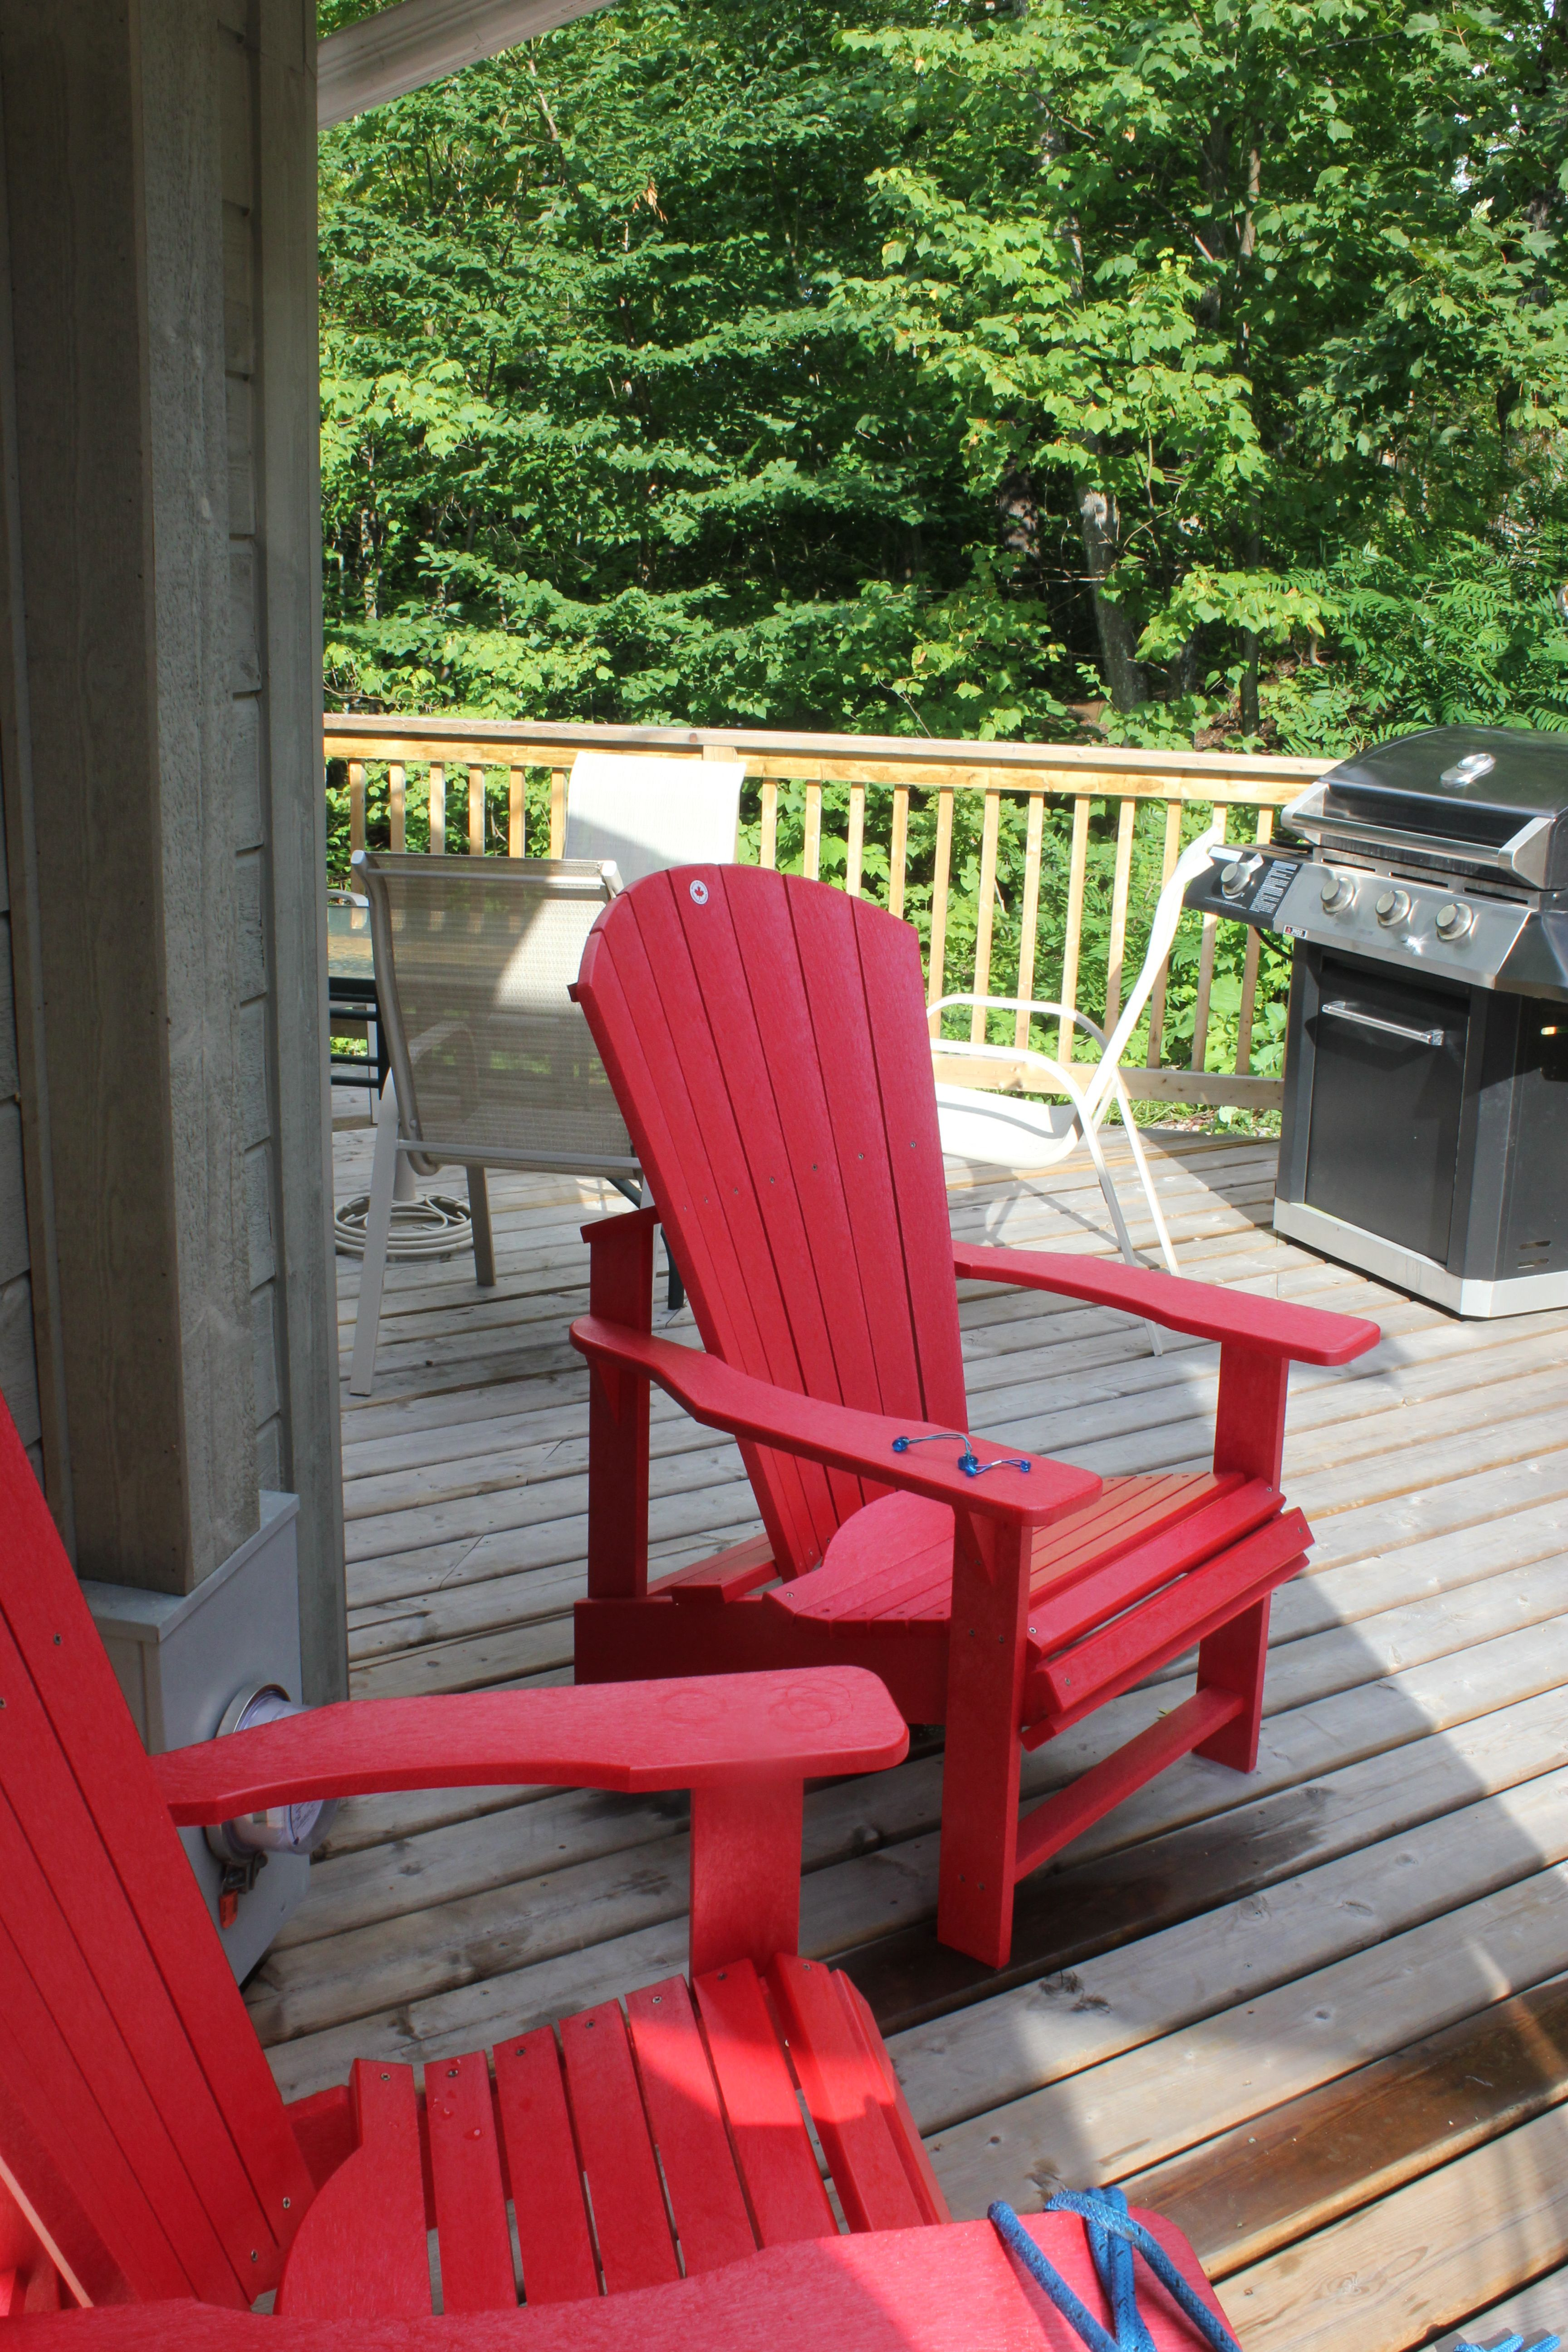 new recyled material muskoka chairs we bought